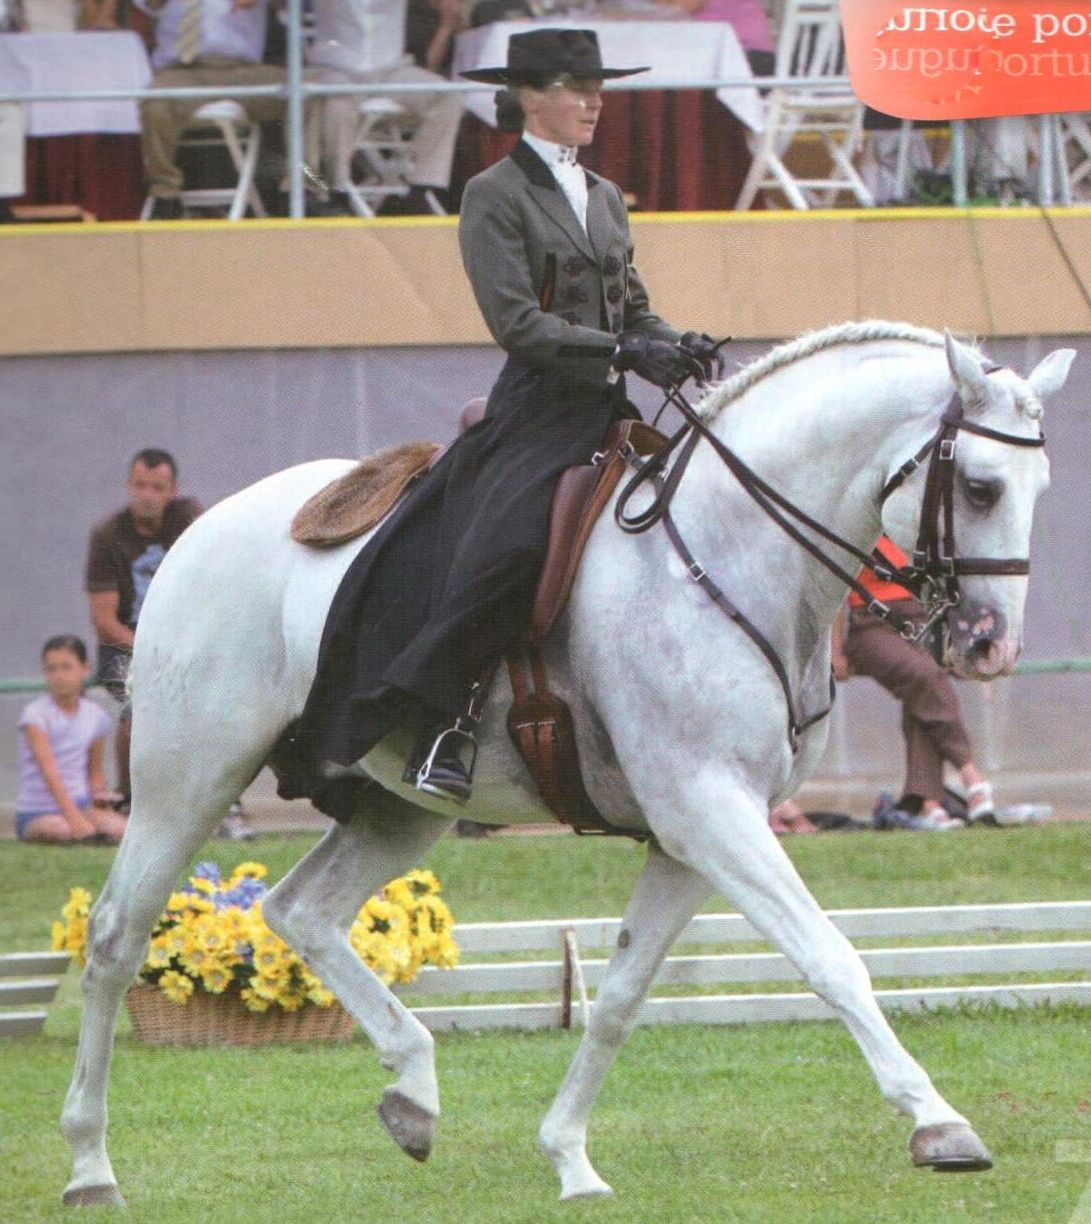 Horse Riding Clothes Cheaper Than Retail Price Buy Clothing Accessories And Lifestyle Products For Women Men